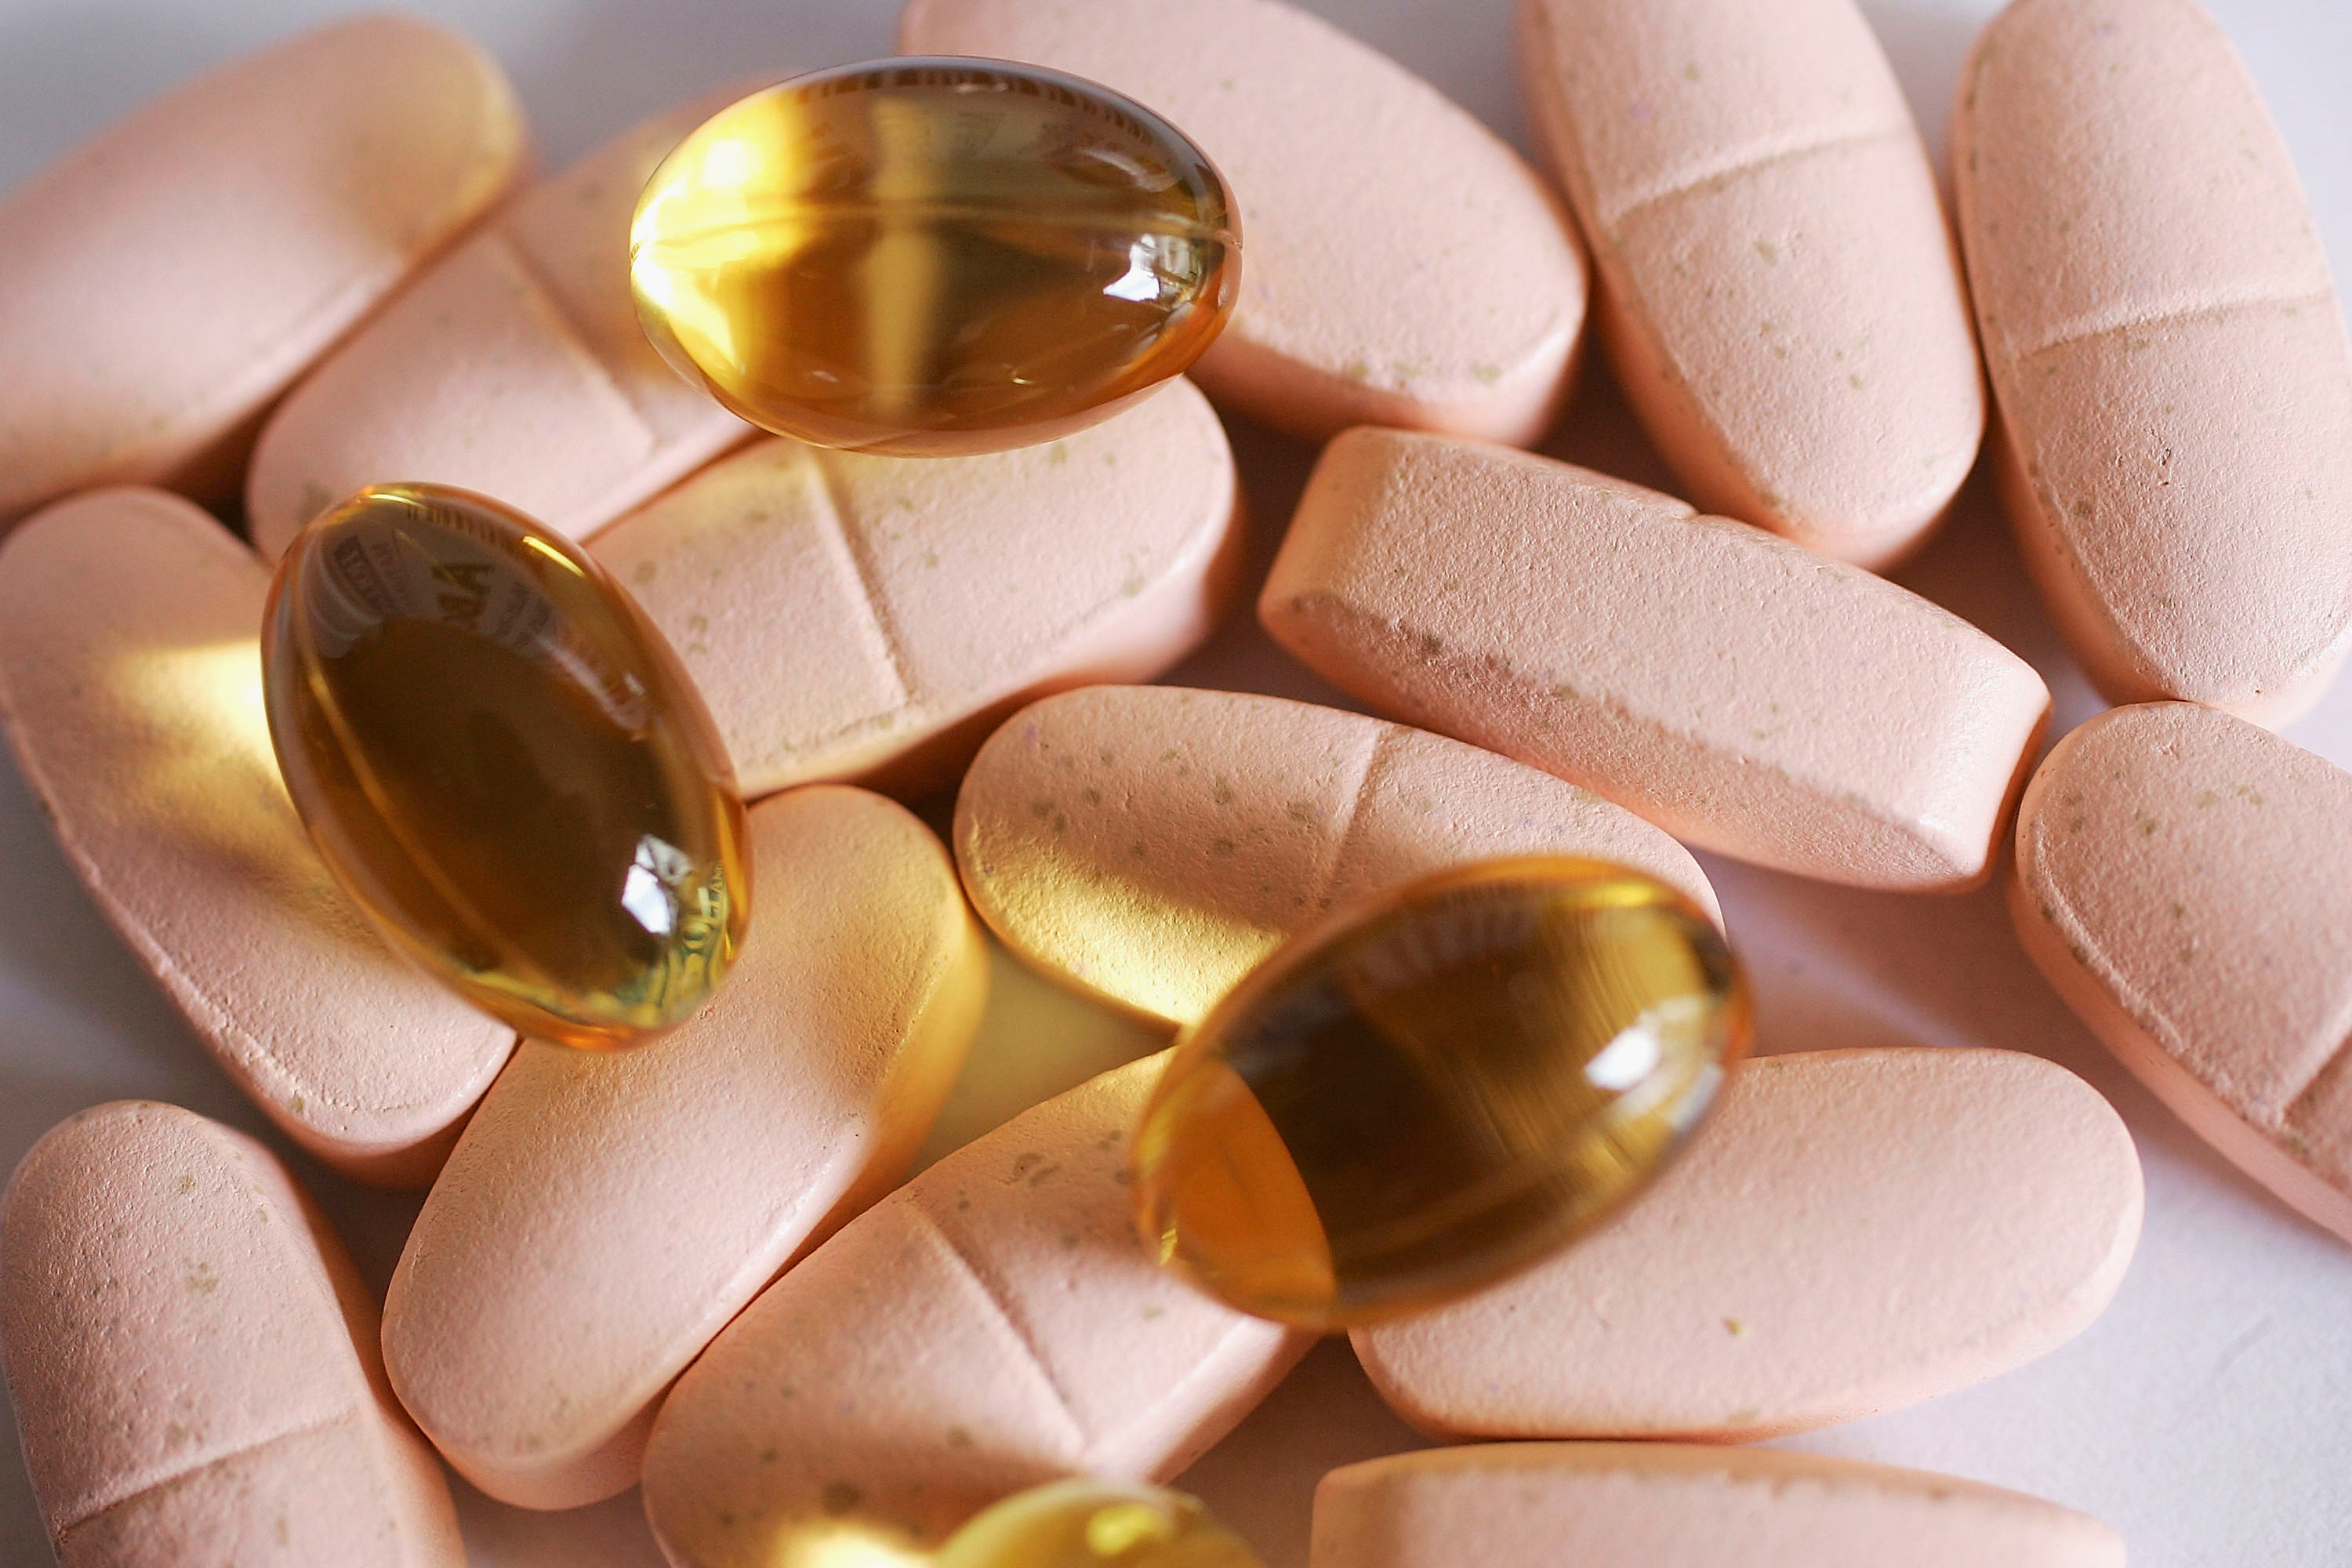 Calcium, Vitamin D Supplements Wont Prevent Fractures, Study Finds